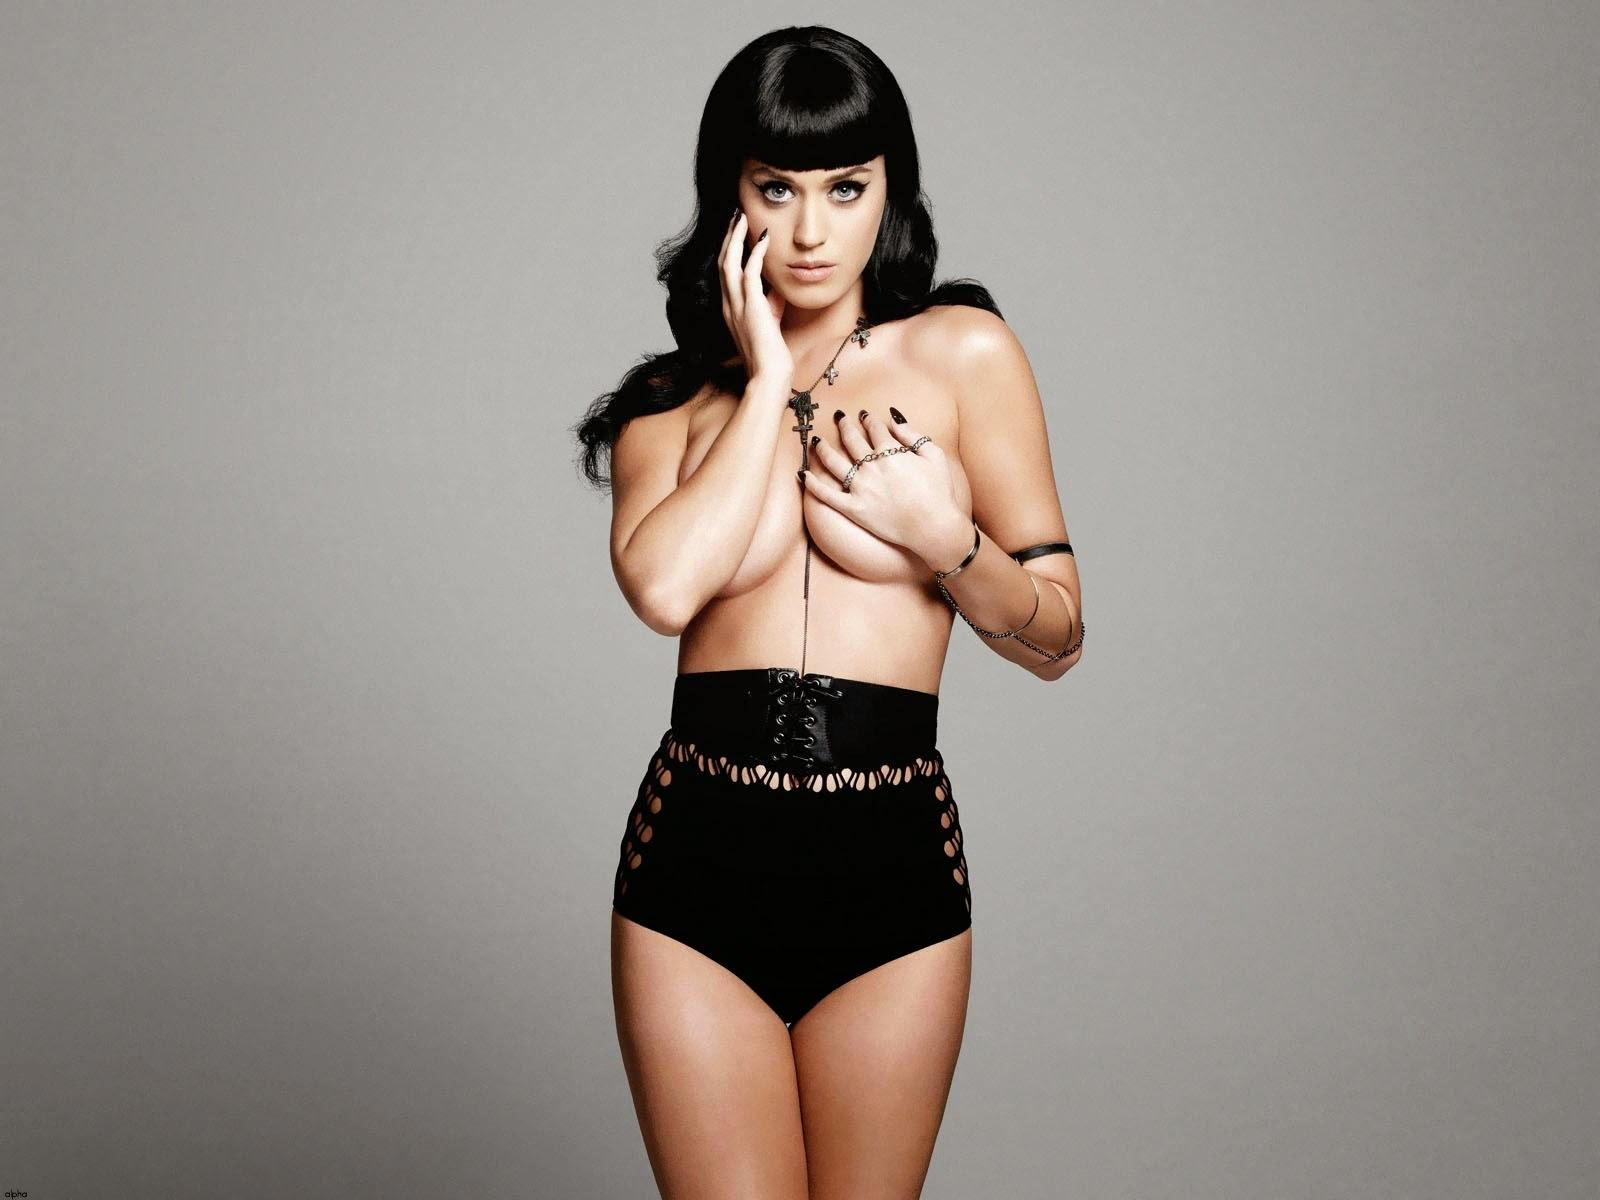 Beauty Photos For Katy Perry Maxim 2014 on http://1styahoo.blogspot.com/.